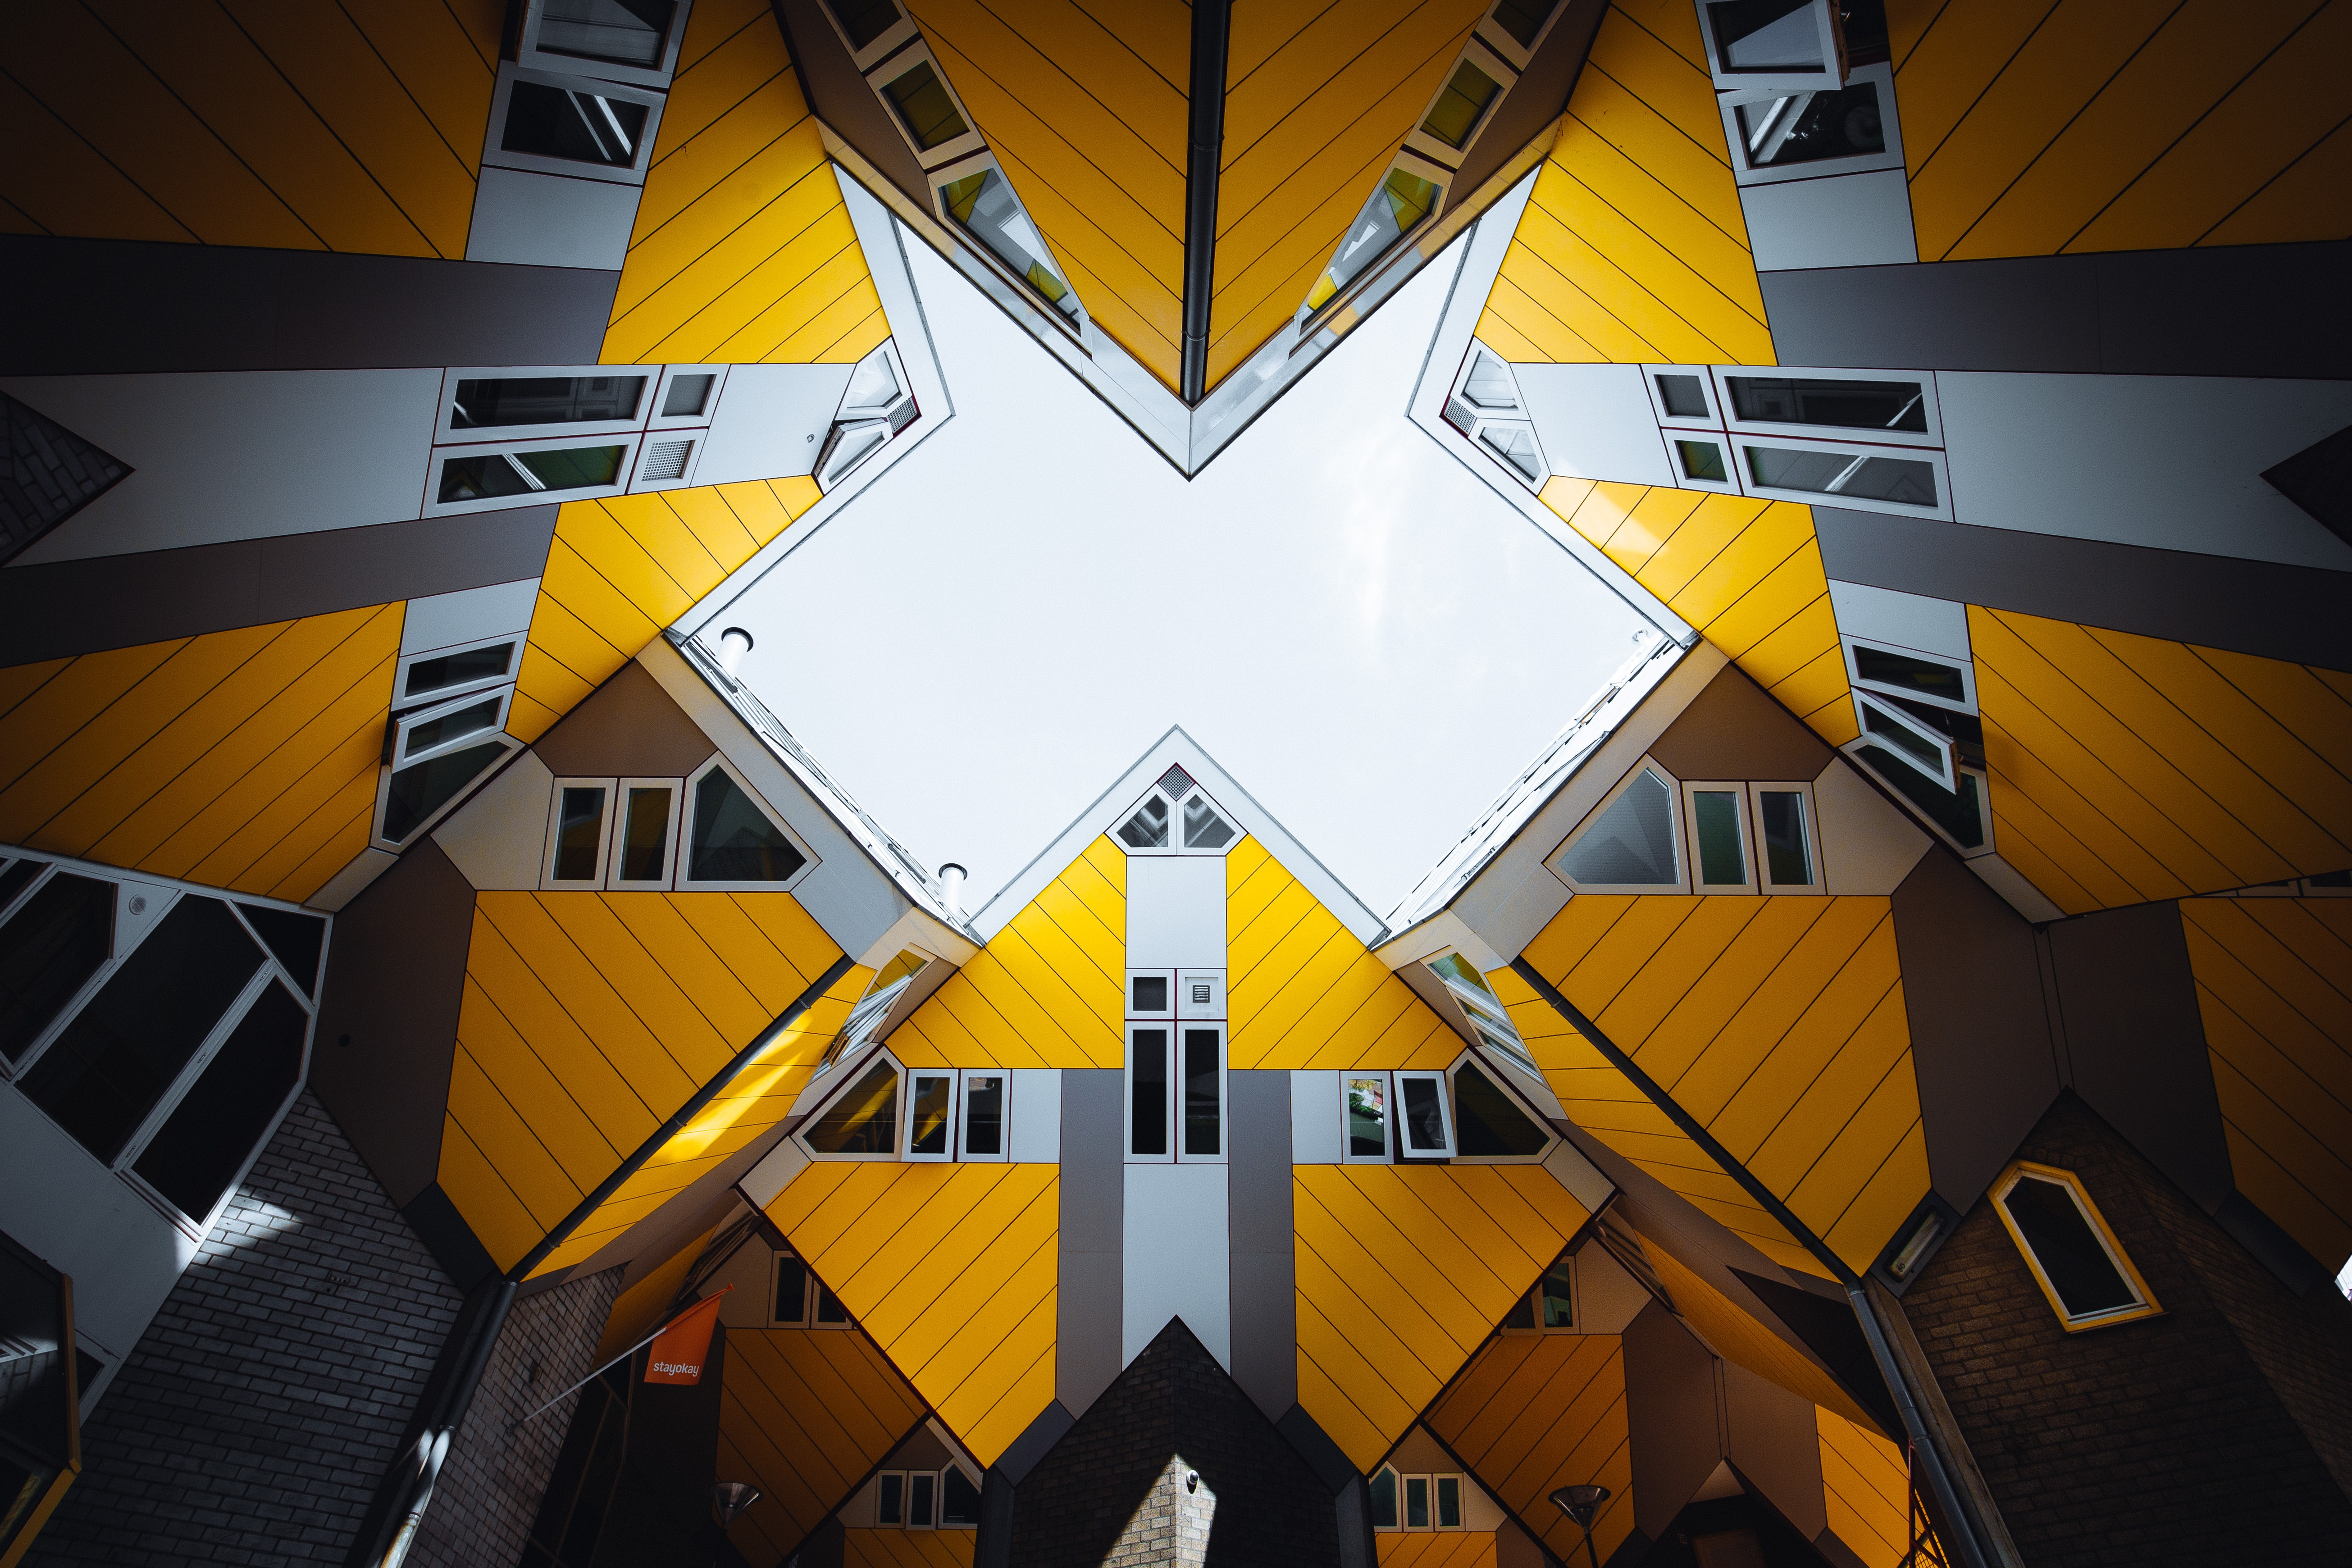 yellow and grey geometric buildings